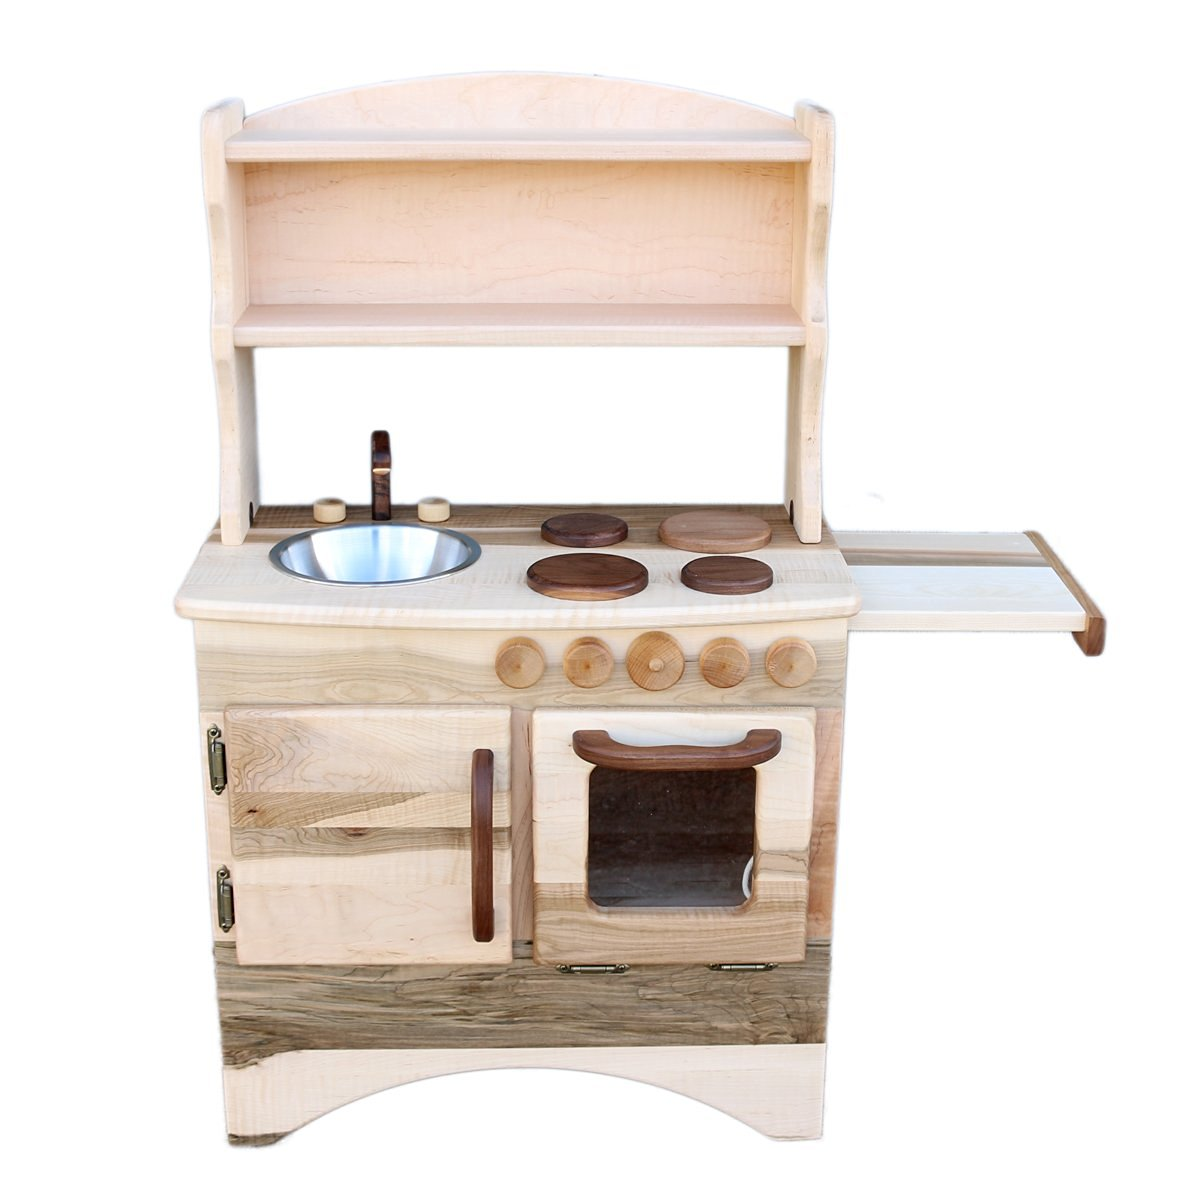 Buy Camden Rose Simple Table Top Play Kitchen, Cherry w/Walnut ...